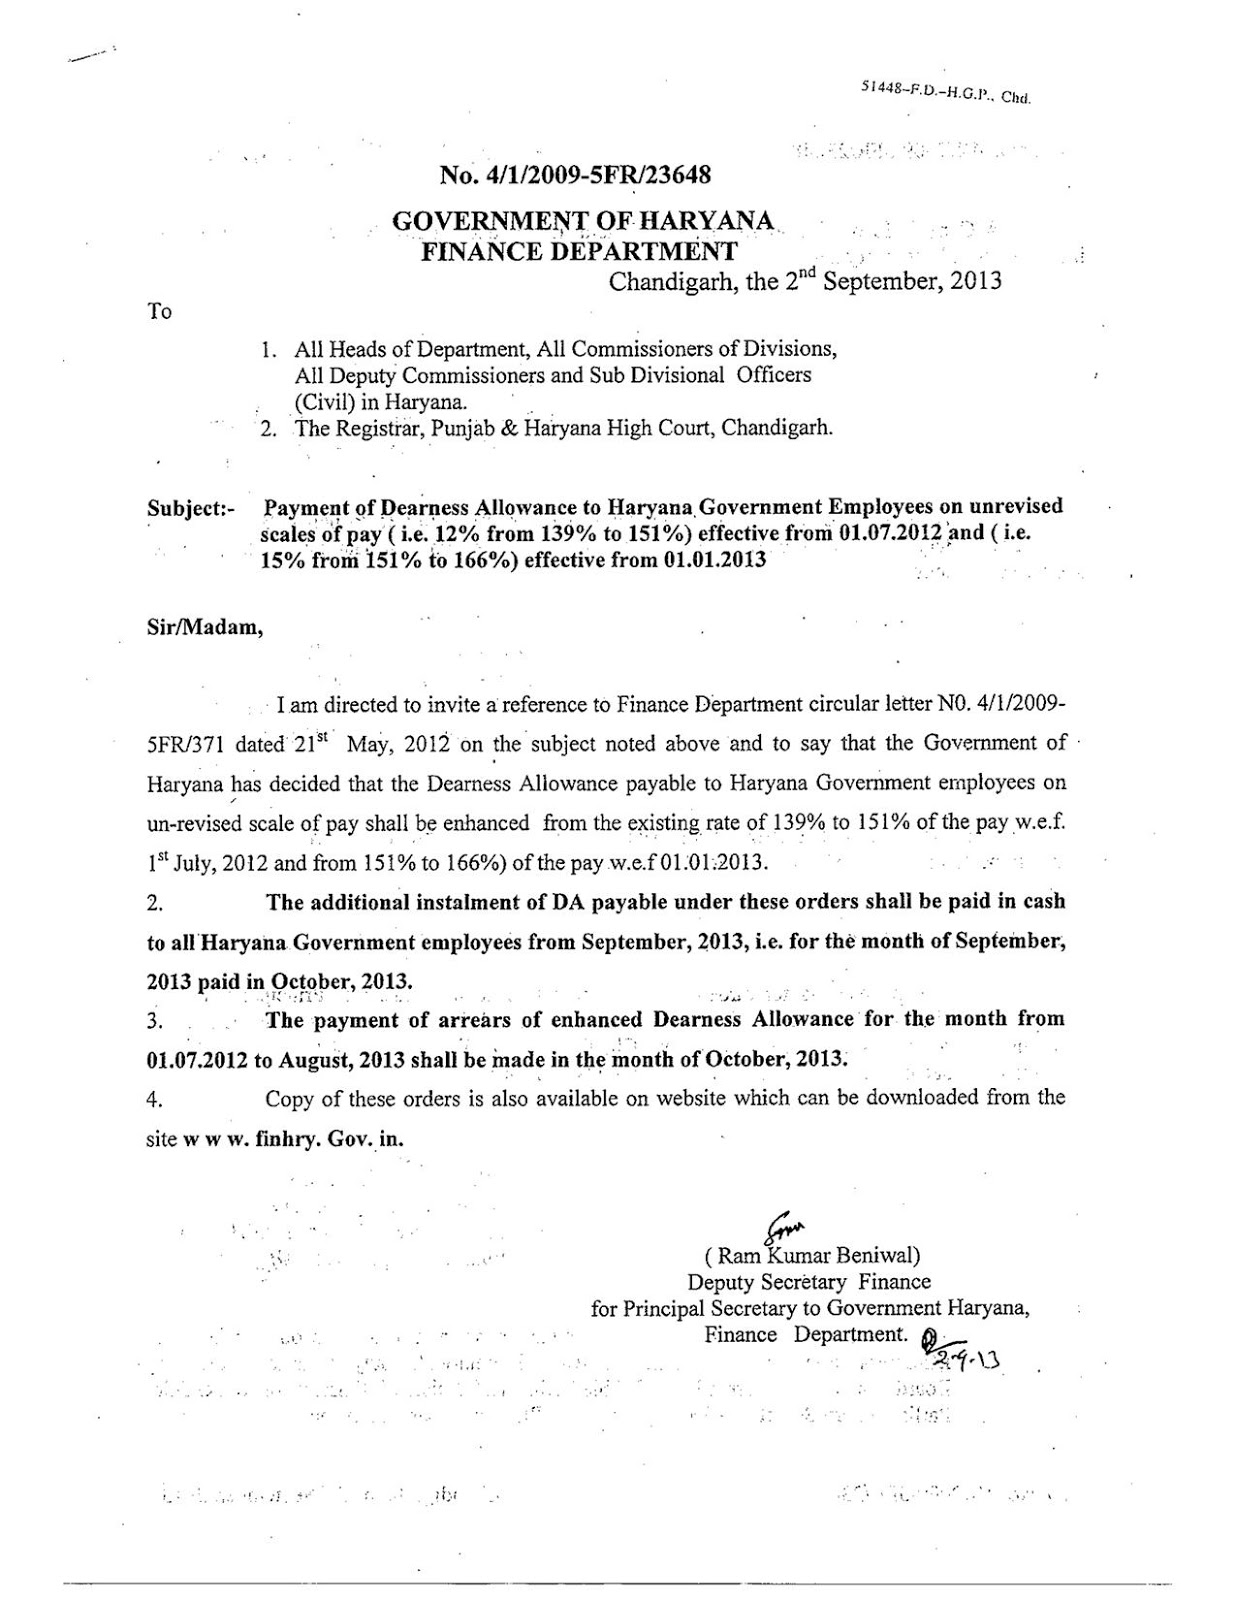 Payment of Dearness Allowance to Haryana Government employees on